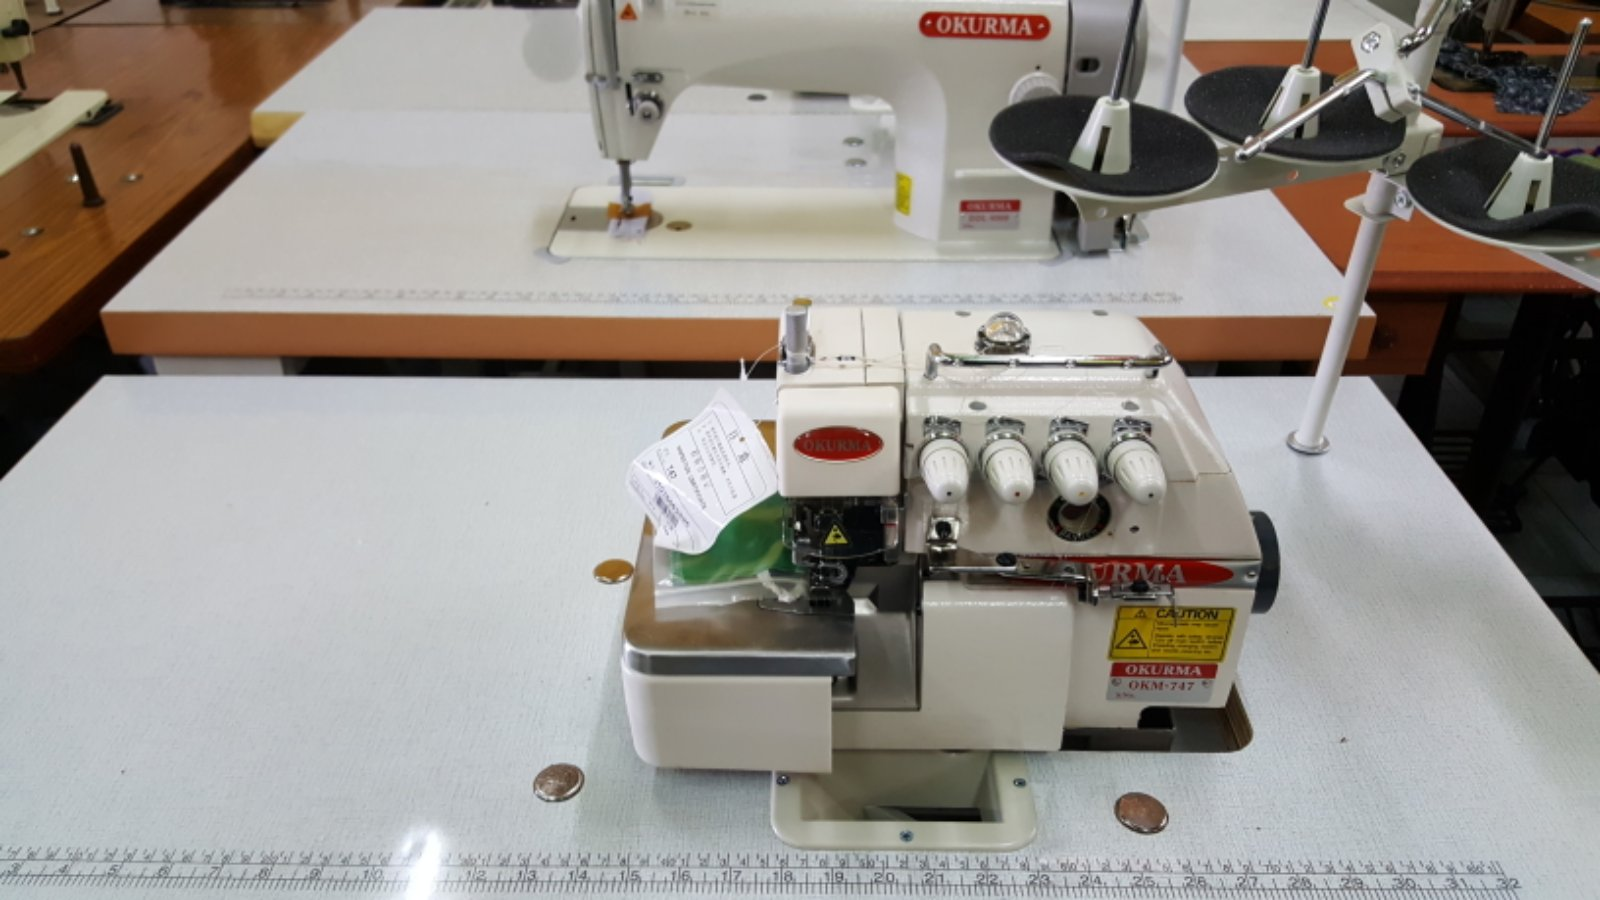 One Set Okurma Hi Speed And Overlock Sewing Machine